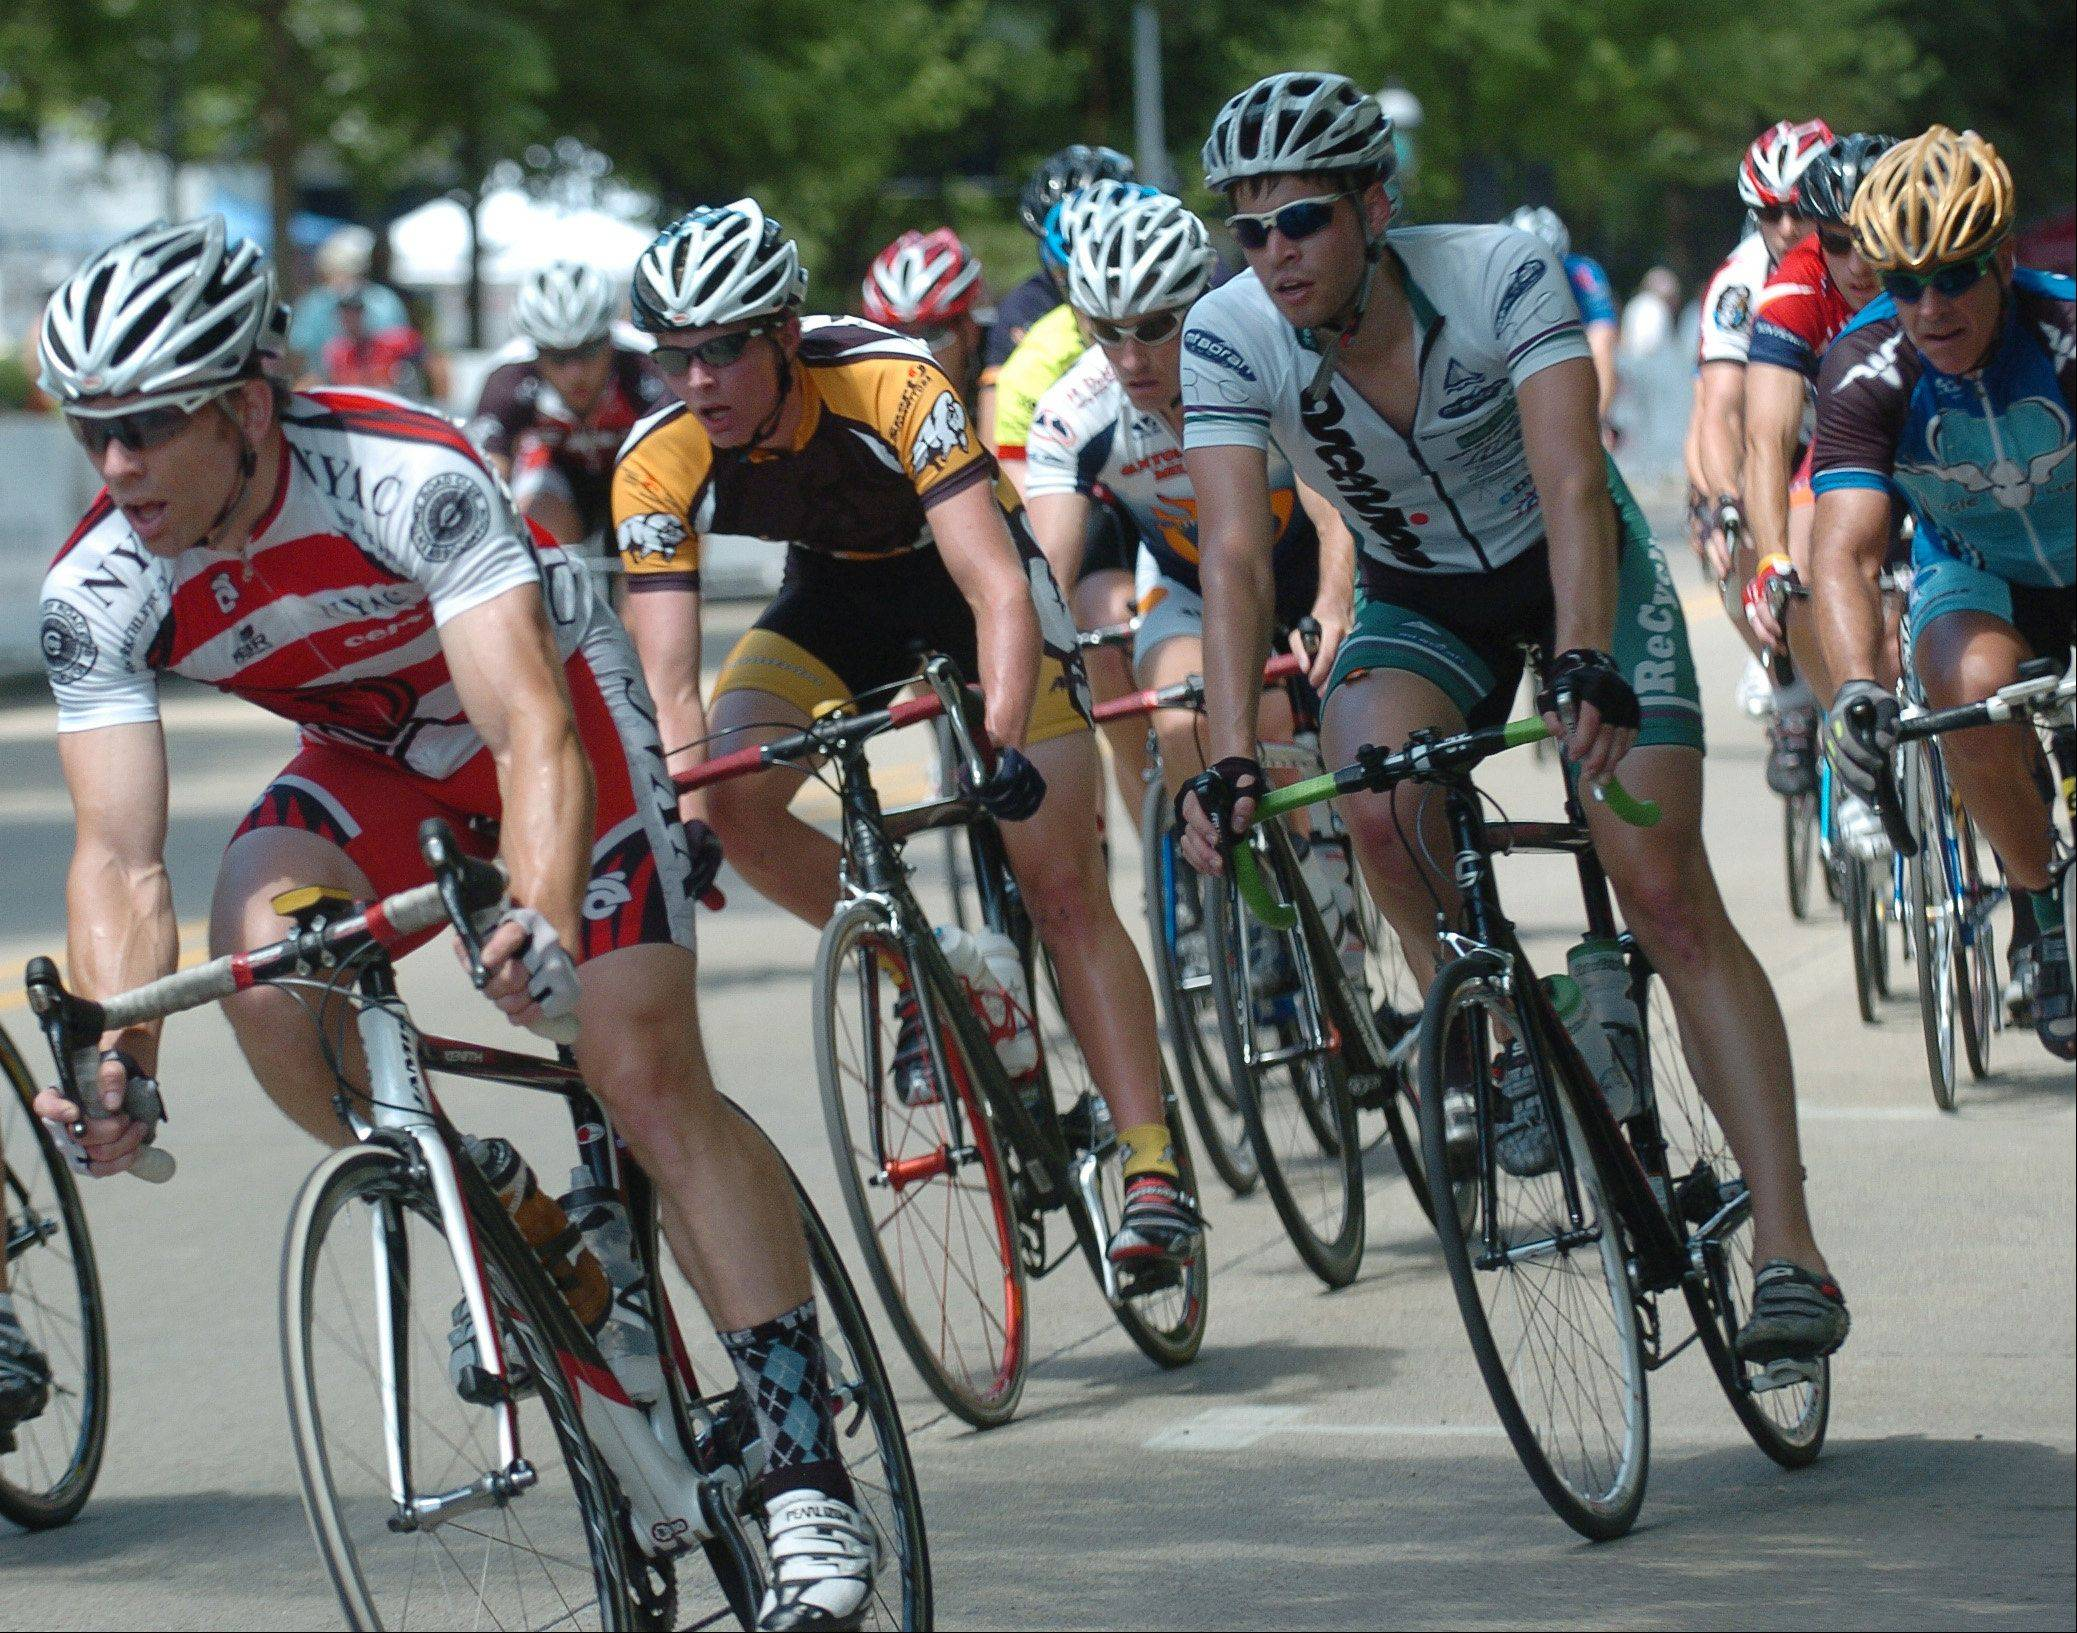 More than 600 cyclists from throughout the world are expected to compete in the 2011 Geneva Cycling Grand Prix Saturday, July 9.